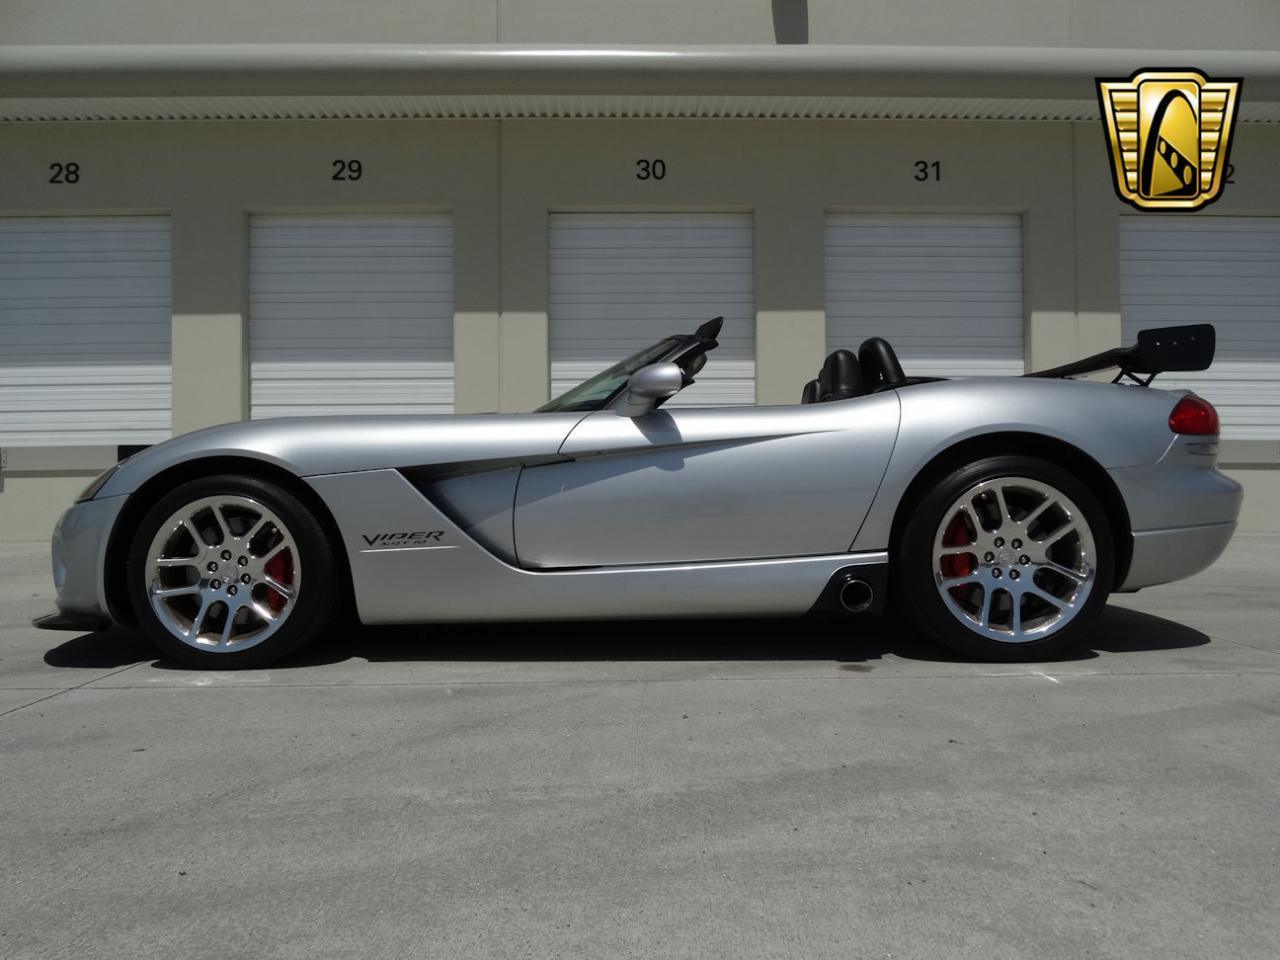 Large Picture of 2004 Dodge Viper located in Florida - $54,000.00 Offered by Gateway Classic Cars - Fort Lauderdale - L6GU